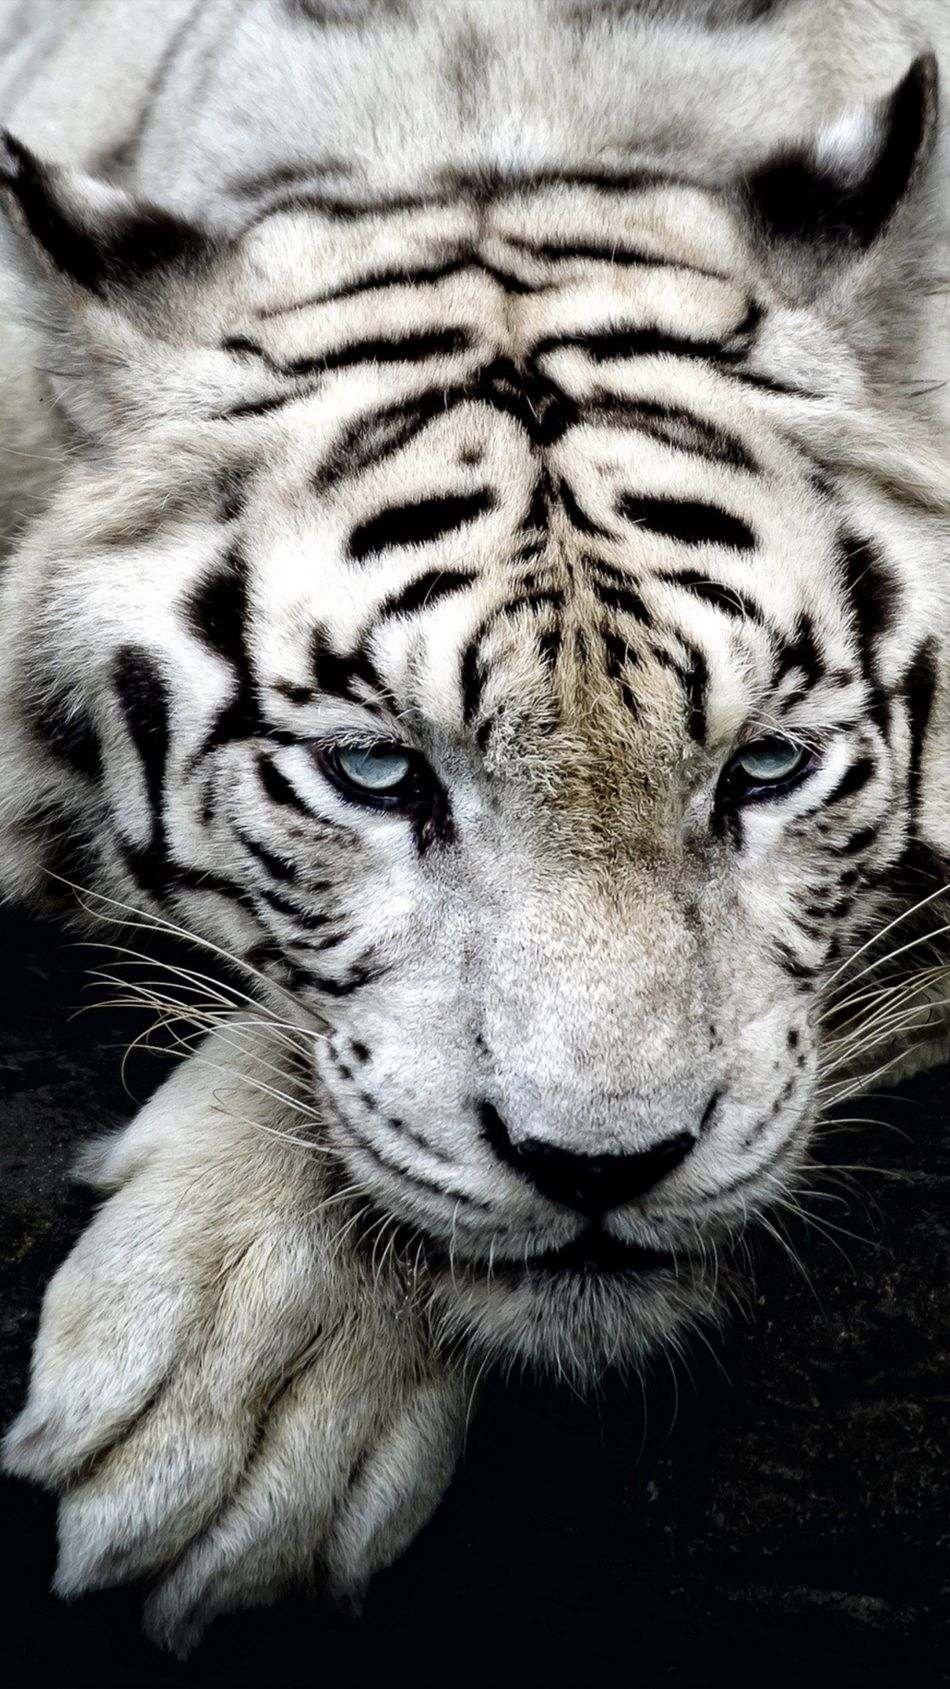 White Tiger Wildlife 4k Ultra Hd Mobile Wallpaper Wild Animal Wallpaper Animals Wild Pet Tiger